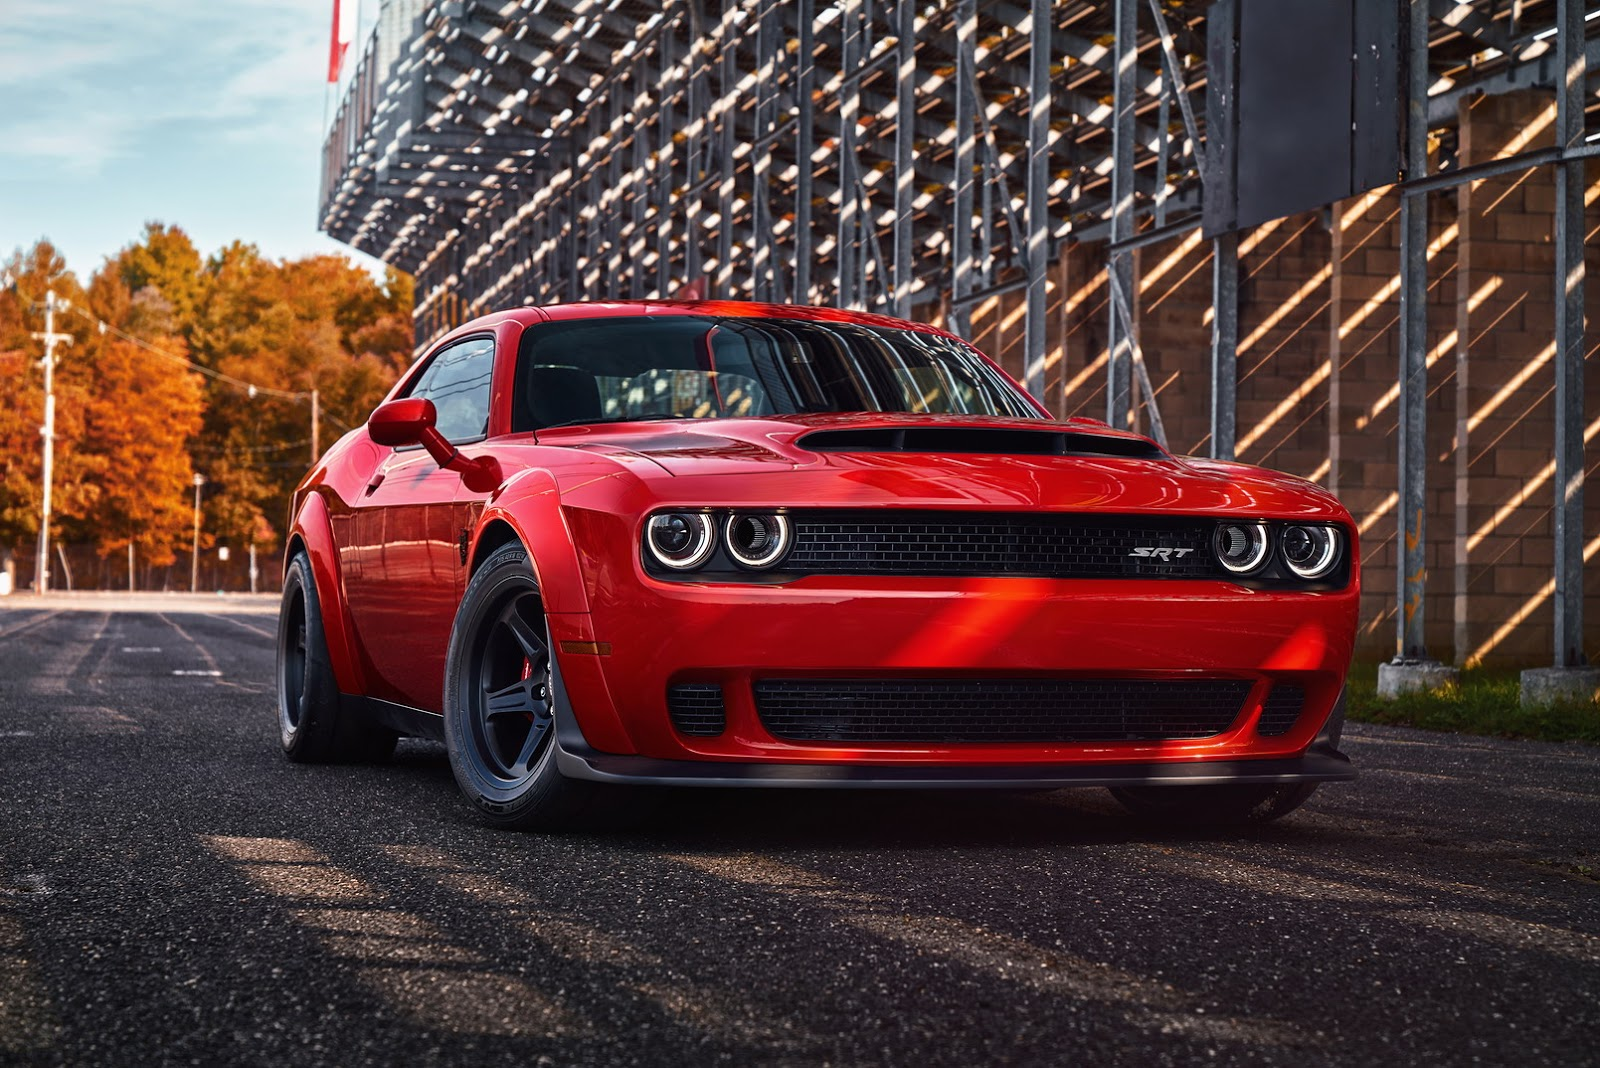 2018 Dodge Demon Goes Official As The World S Fastest 1 4